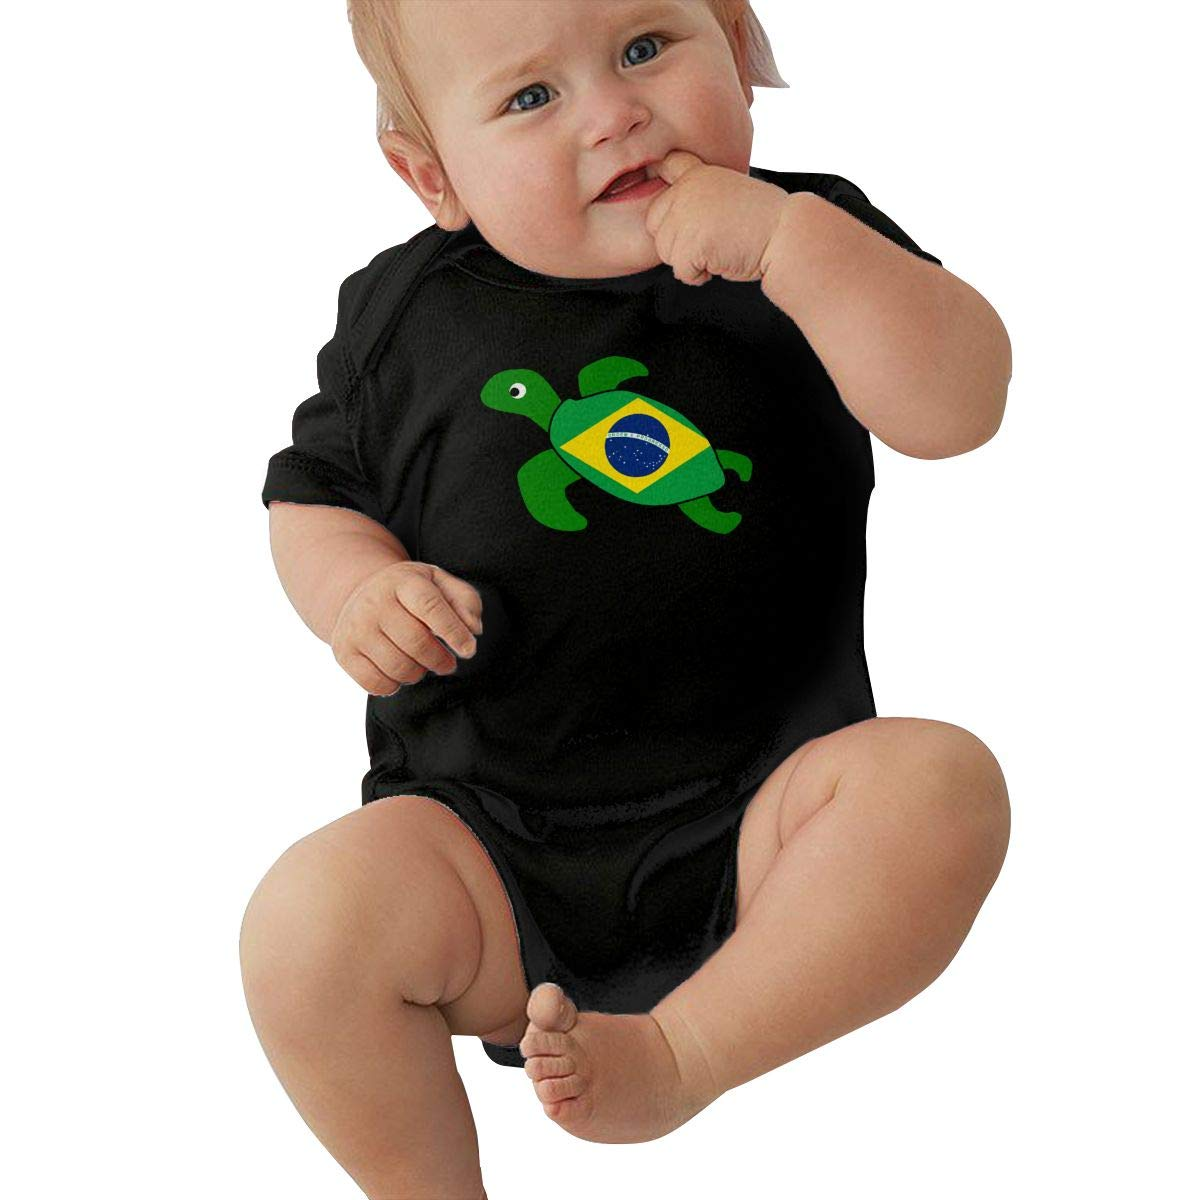 Baby Girls Sea Turtle Brazil Flag Short Sleeve Climbing Clothes Bodysuits Suit 6-24 Months